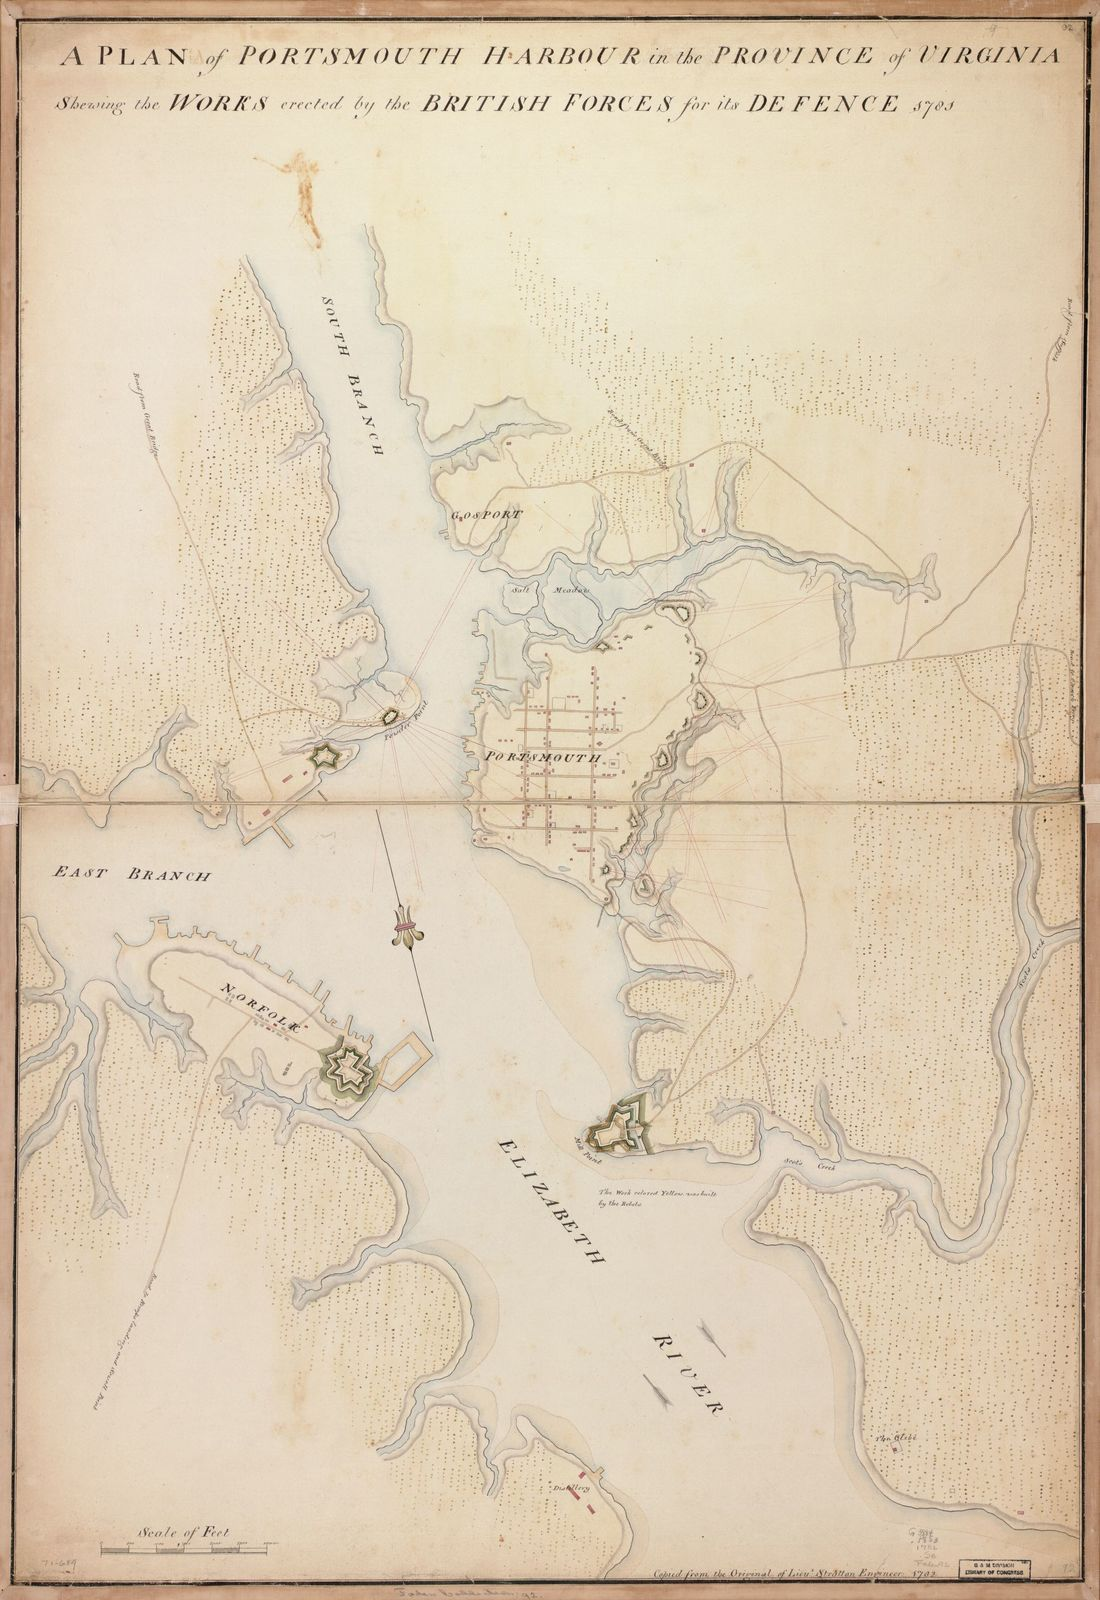 A plan of Portsmouth Harbour in the province of Virginia shewing the works erected by the British forces for its defence, 1781.